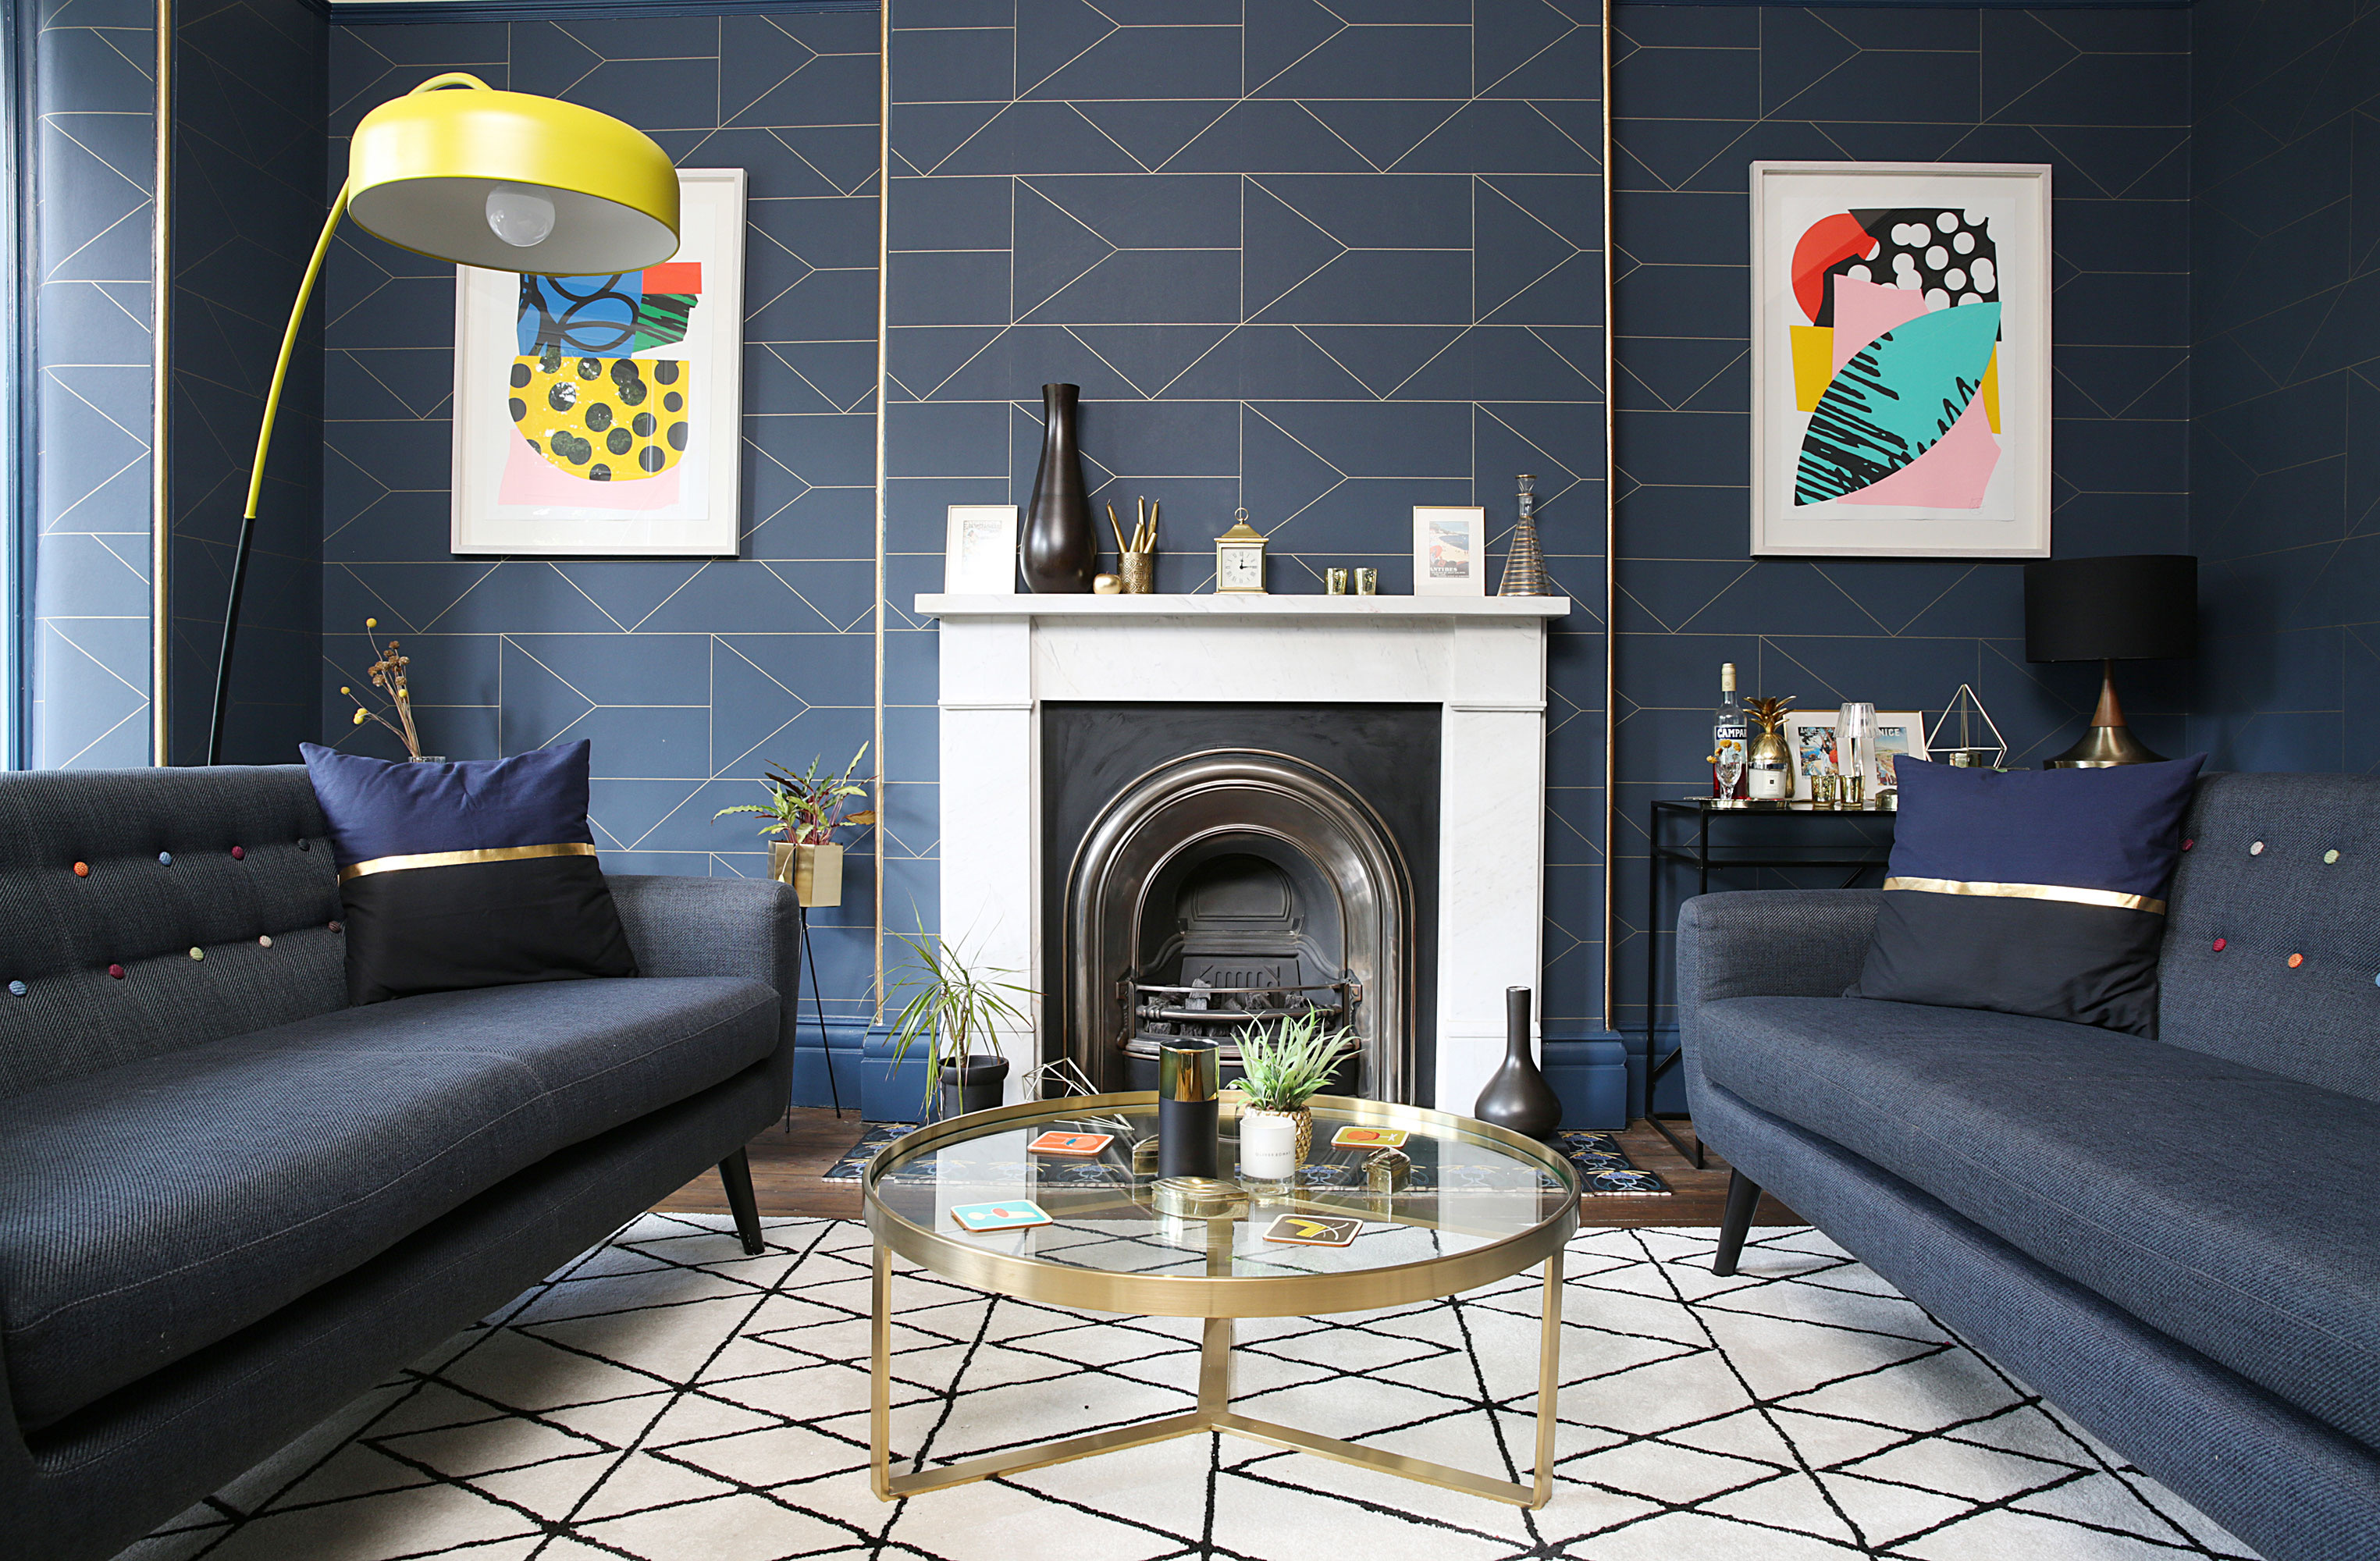 Interior Design Harrogate - Image by Katie Lee